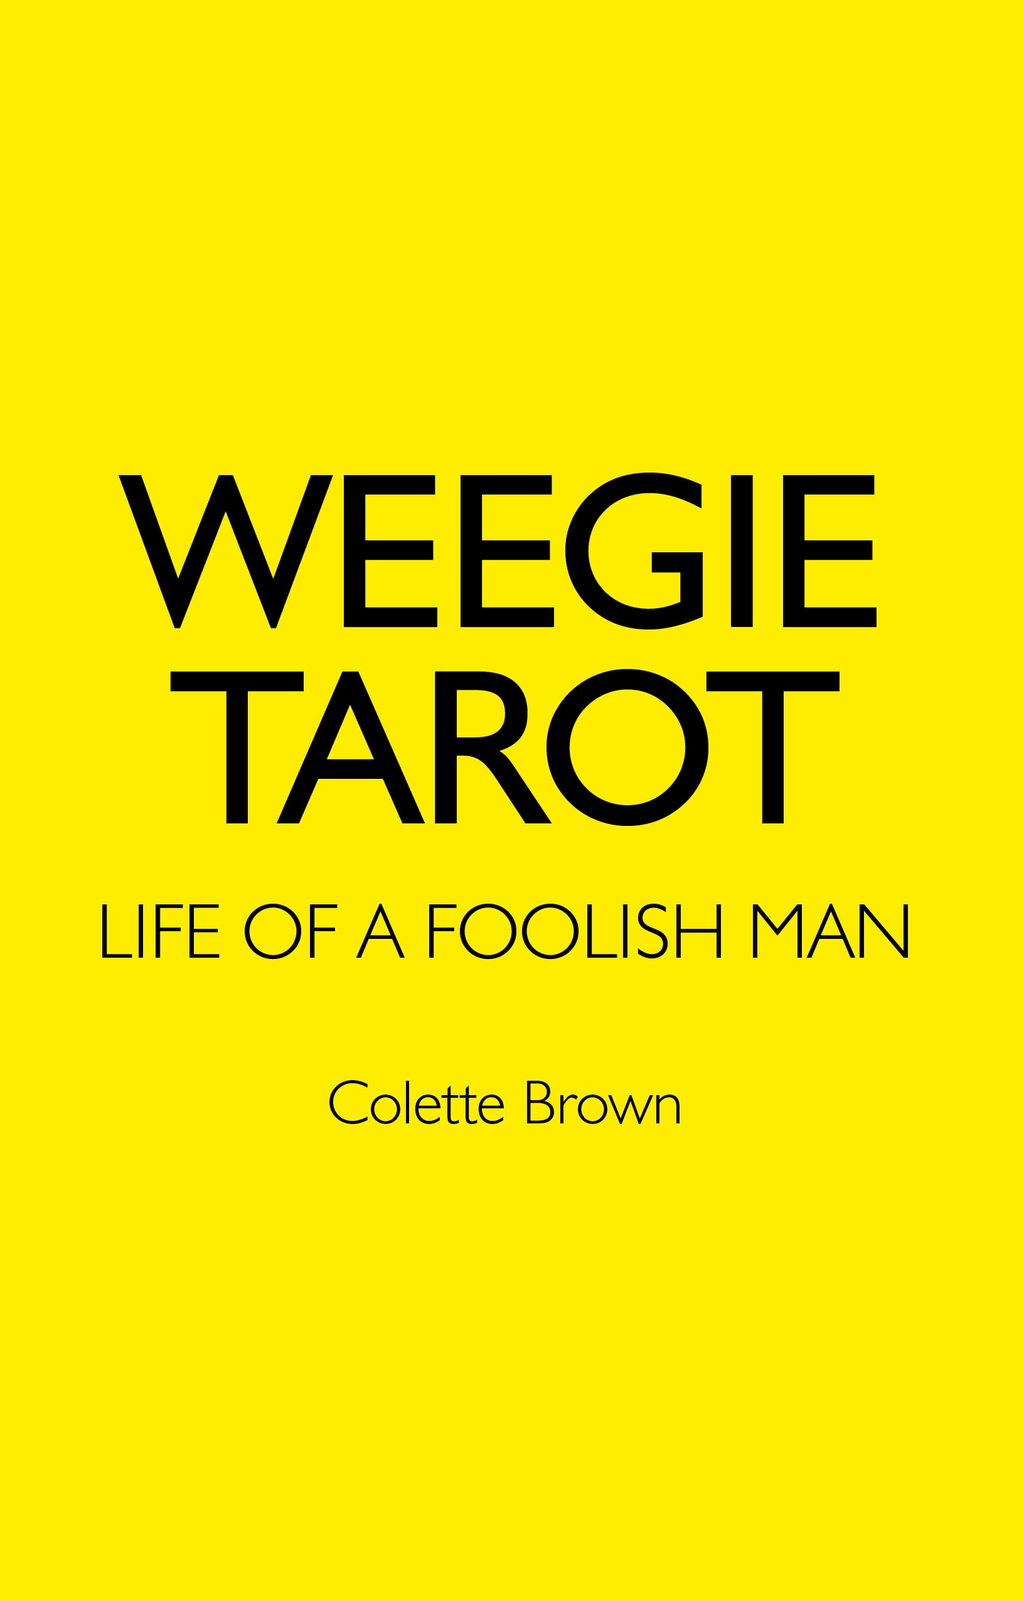 Weegie Tarot: Life of a Foolish Man